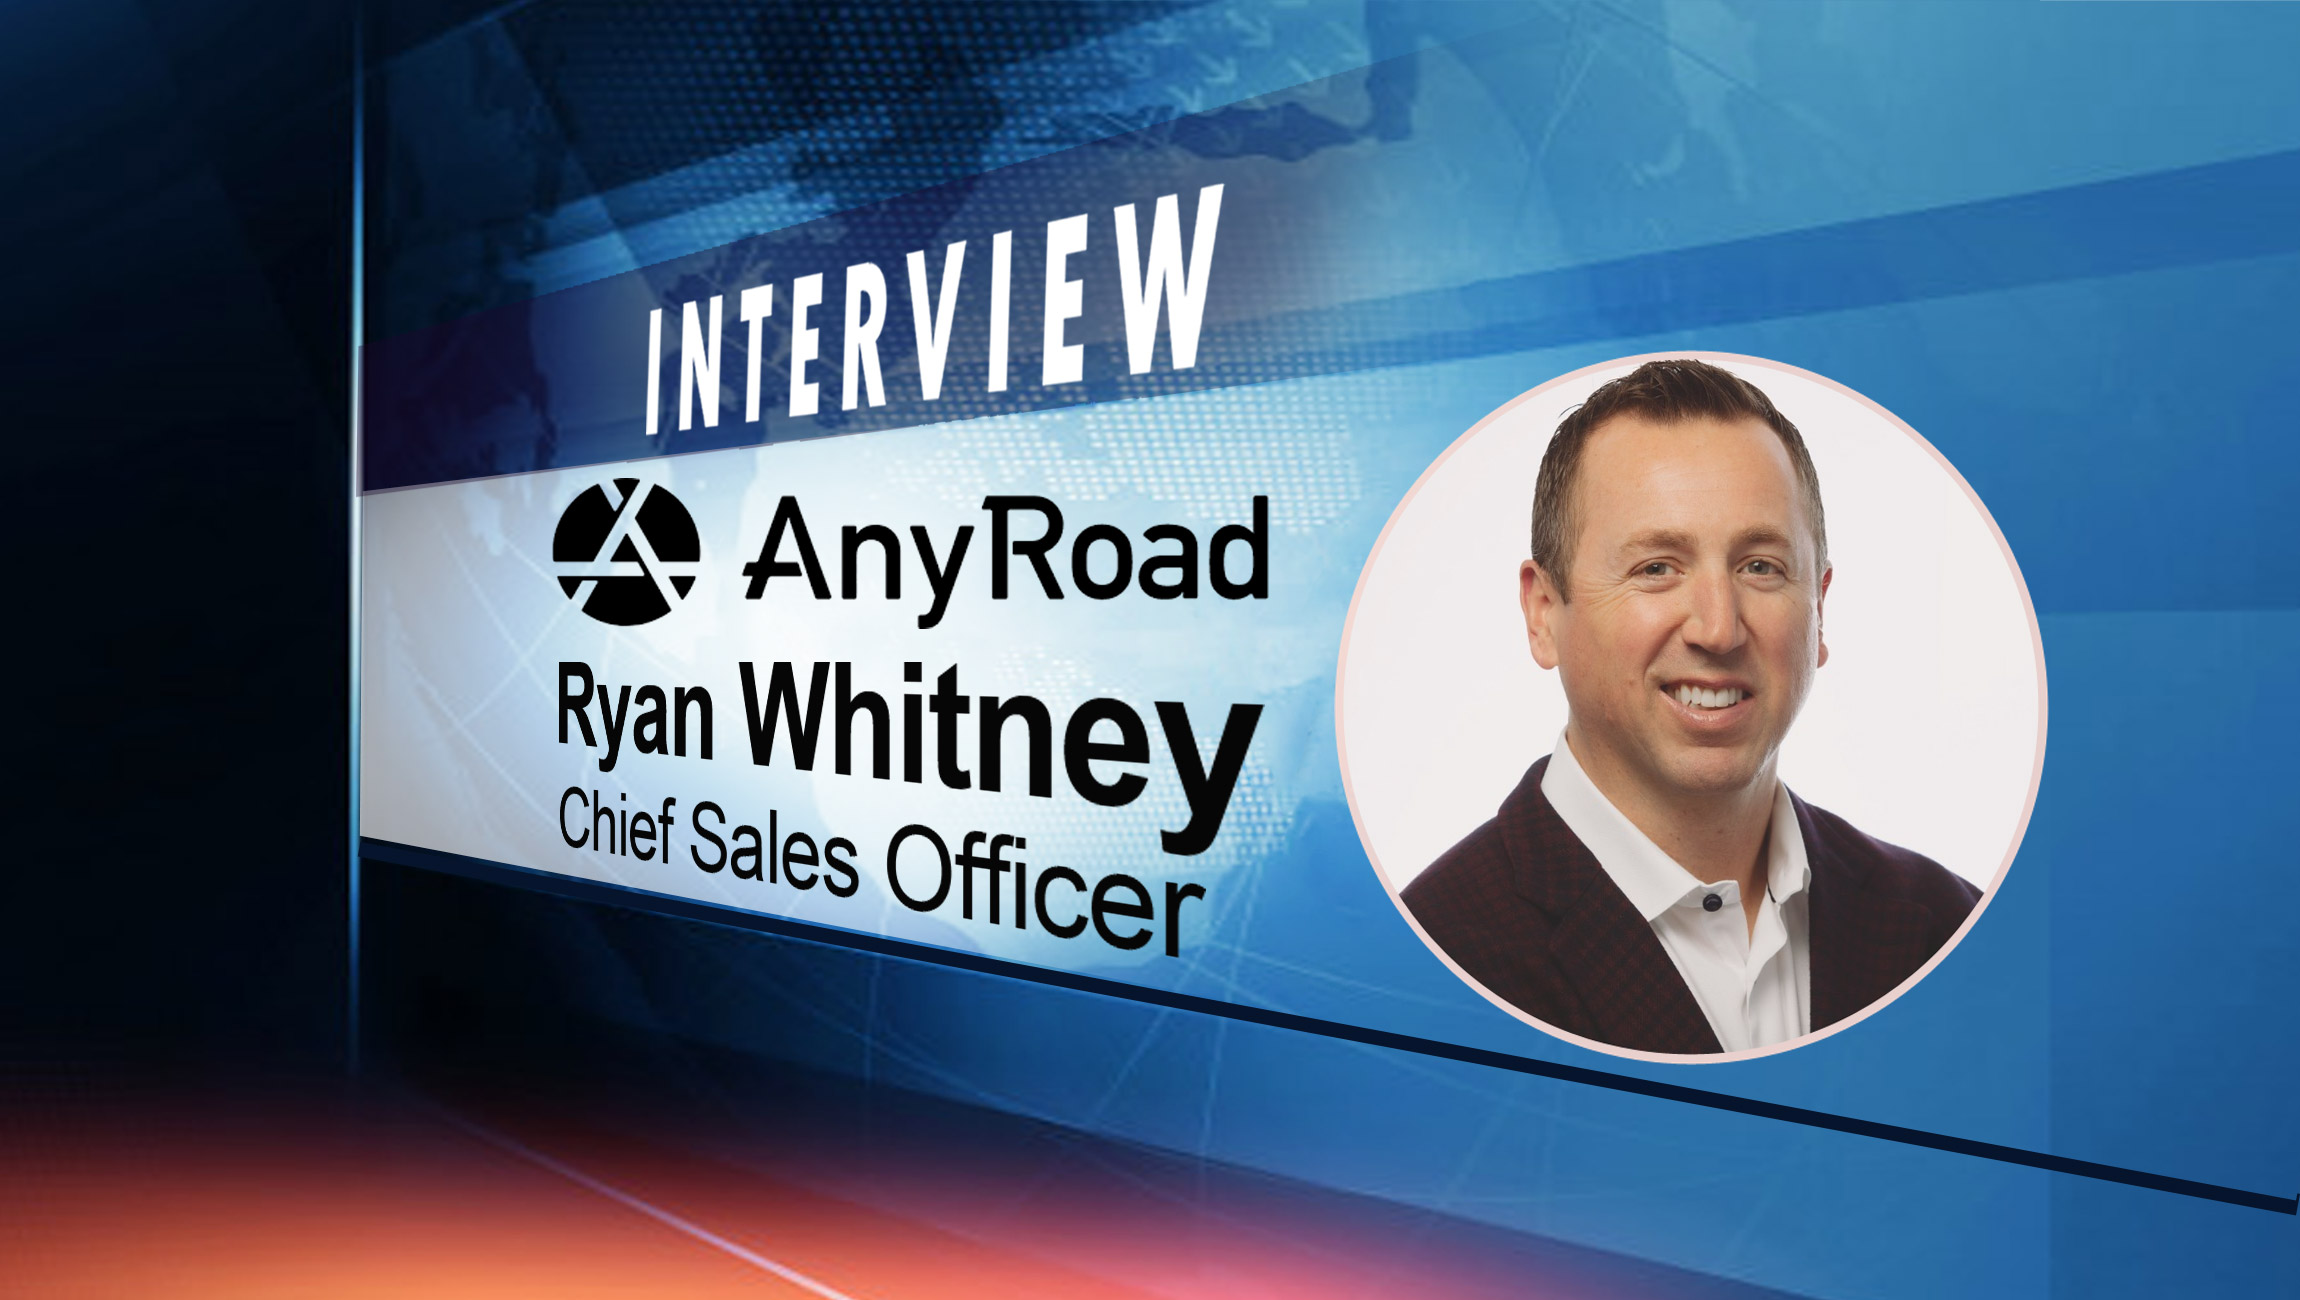 SalesTechStar Interview with Ryan Whitney, Chief Sales Officer at AnyRoad